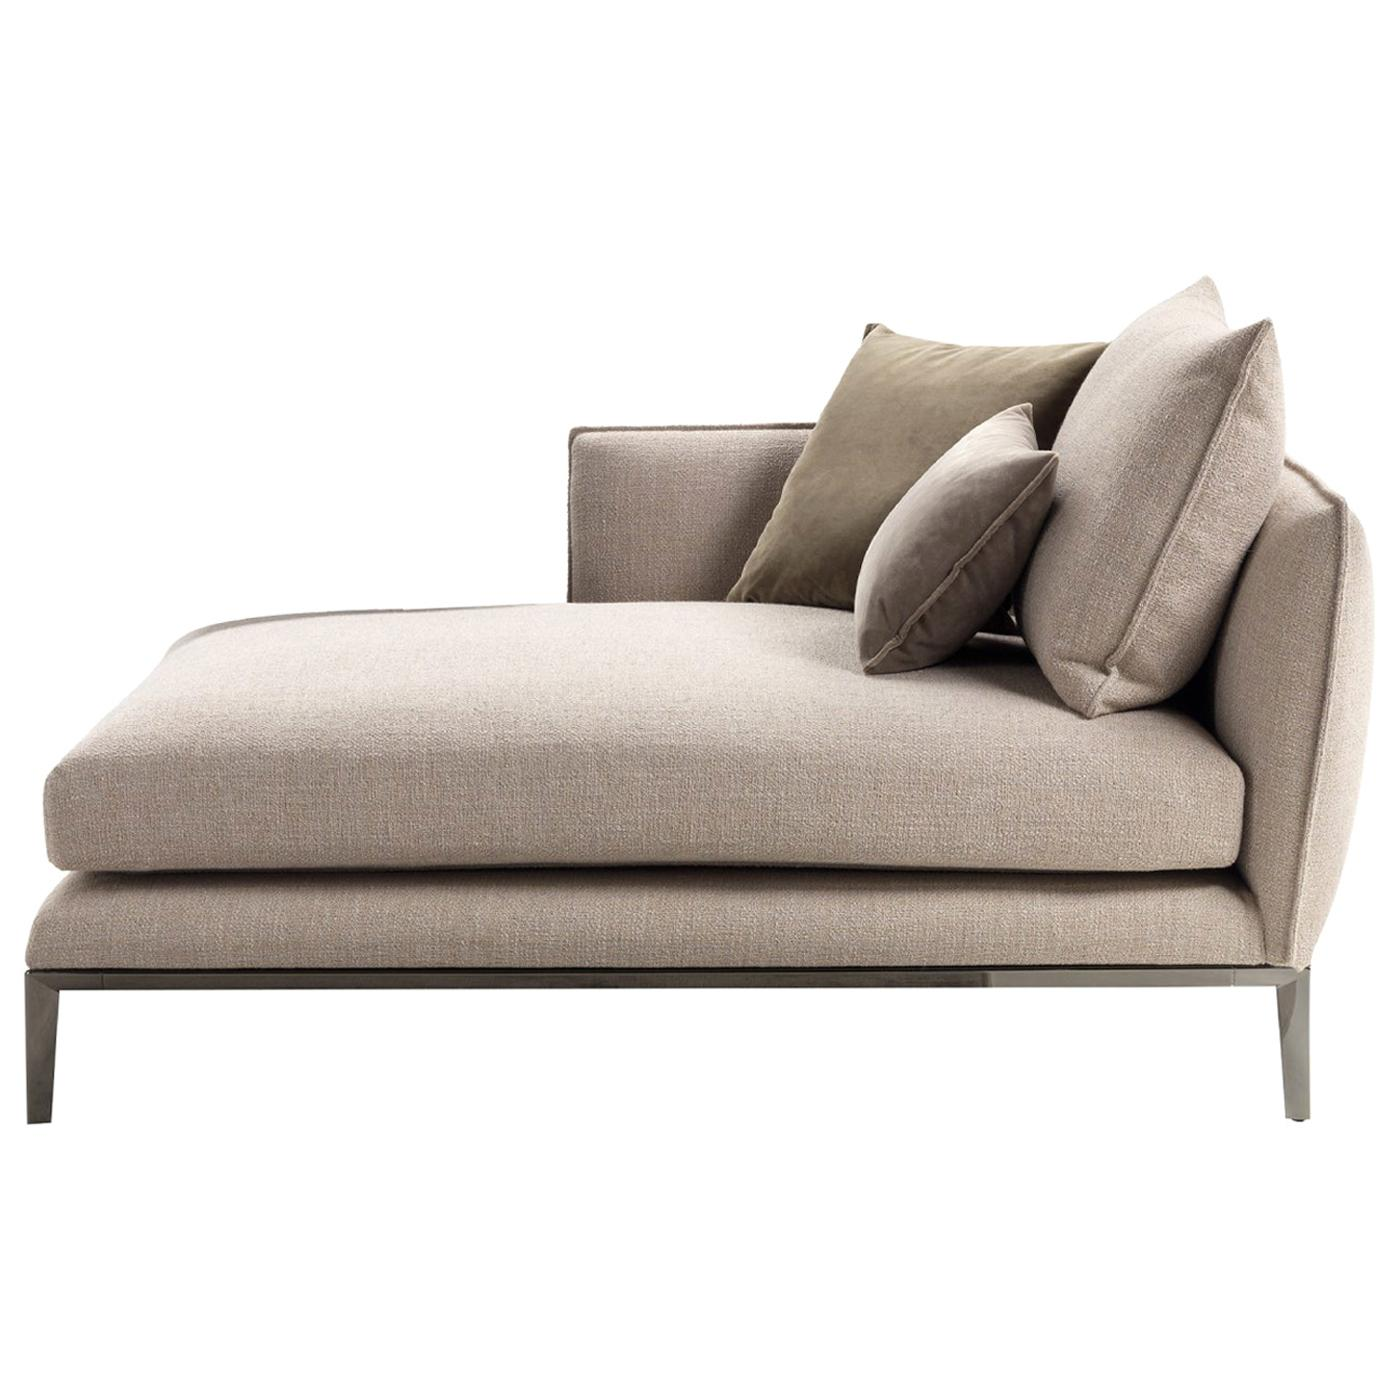 Oliver Upholstered Chaise Longue